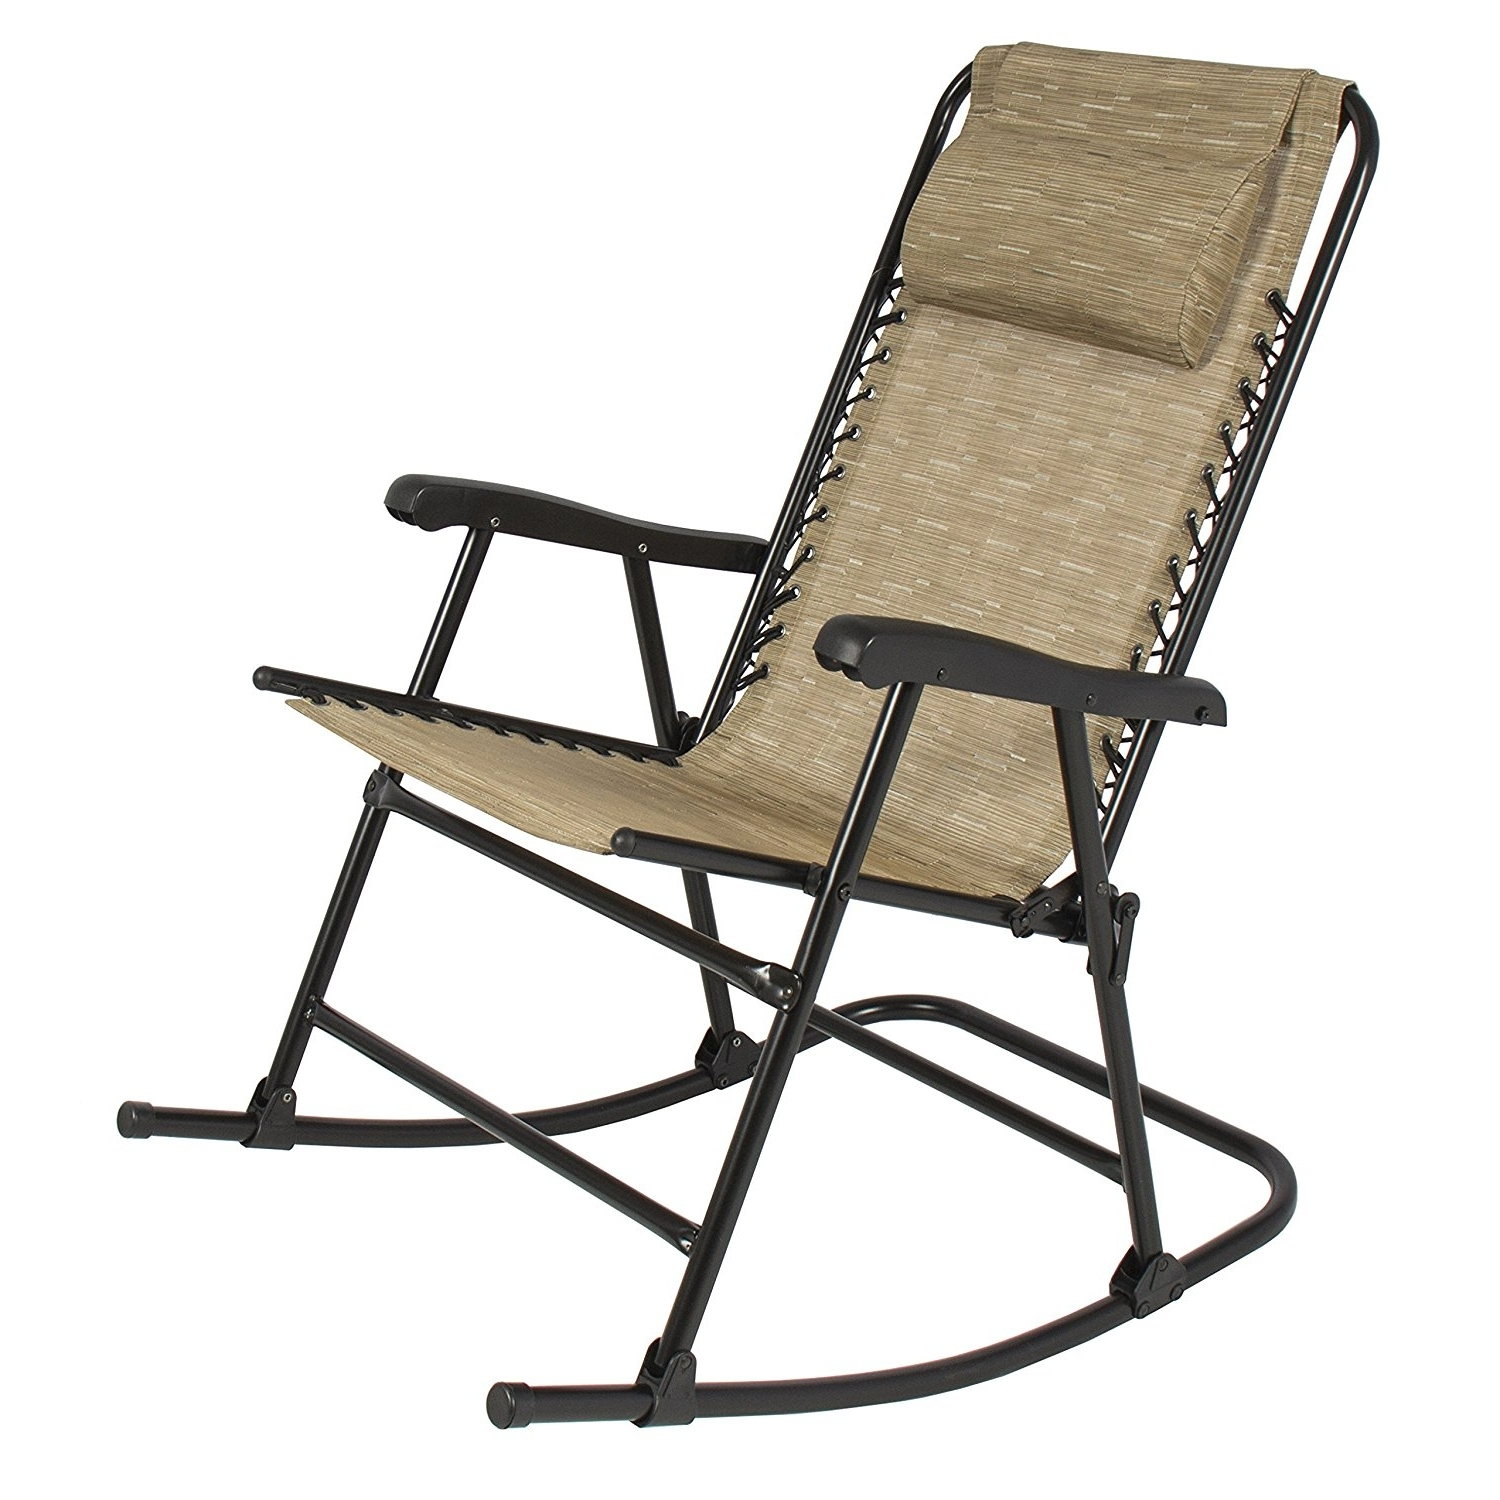 2017 Aluminum Patio Rocking Chairs Inside Chairs: Fancy Outdoor Rocking Chair For Your Outdoor Space (View 3 of 15)